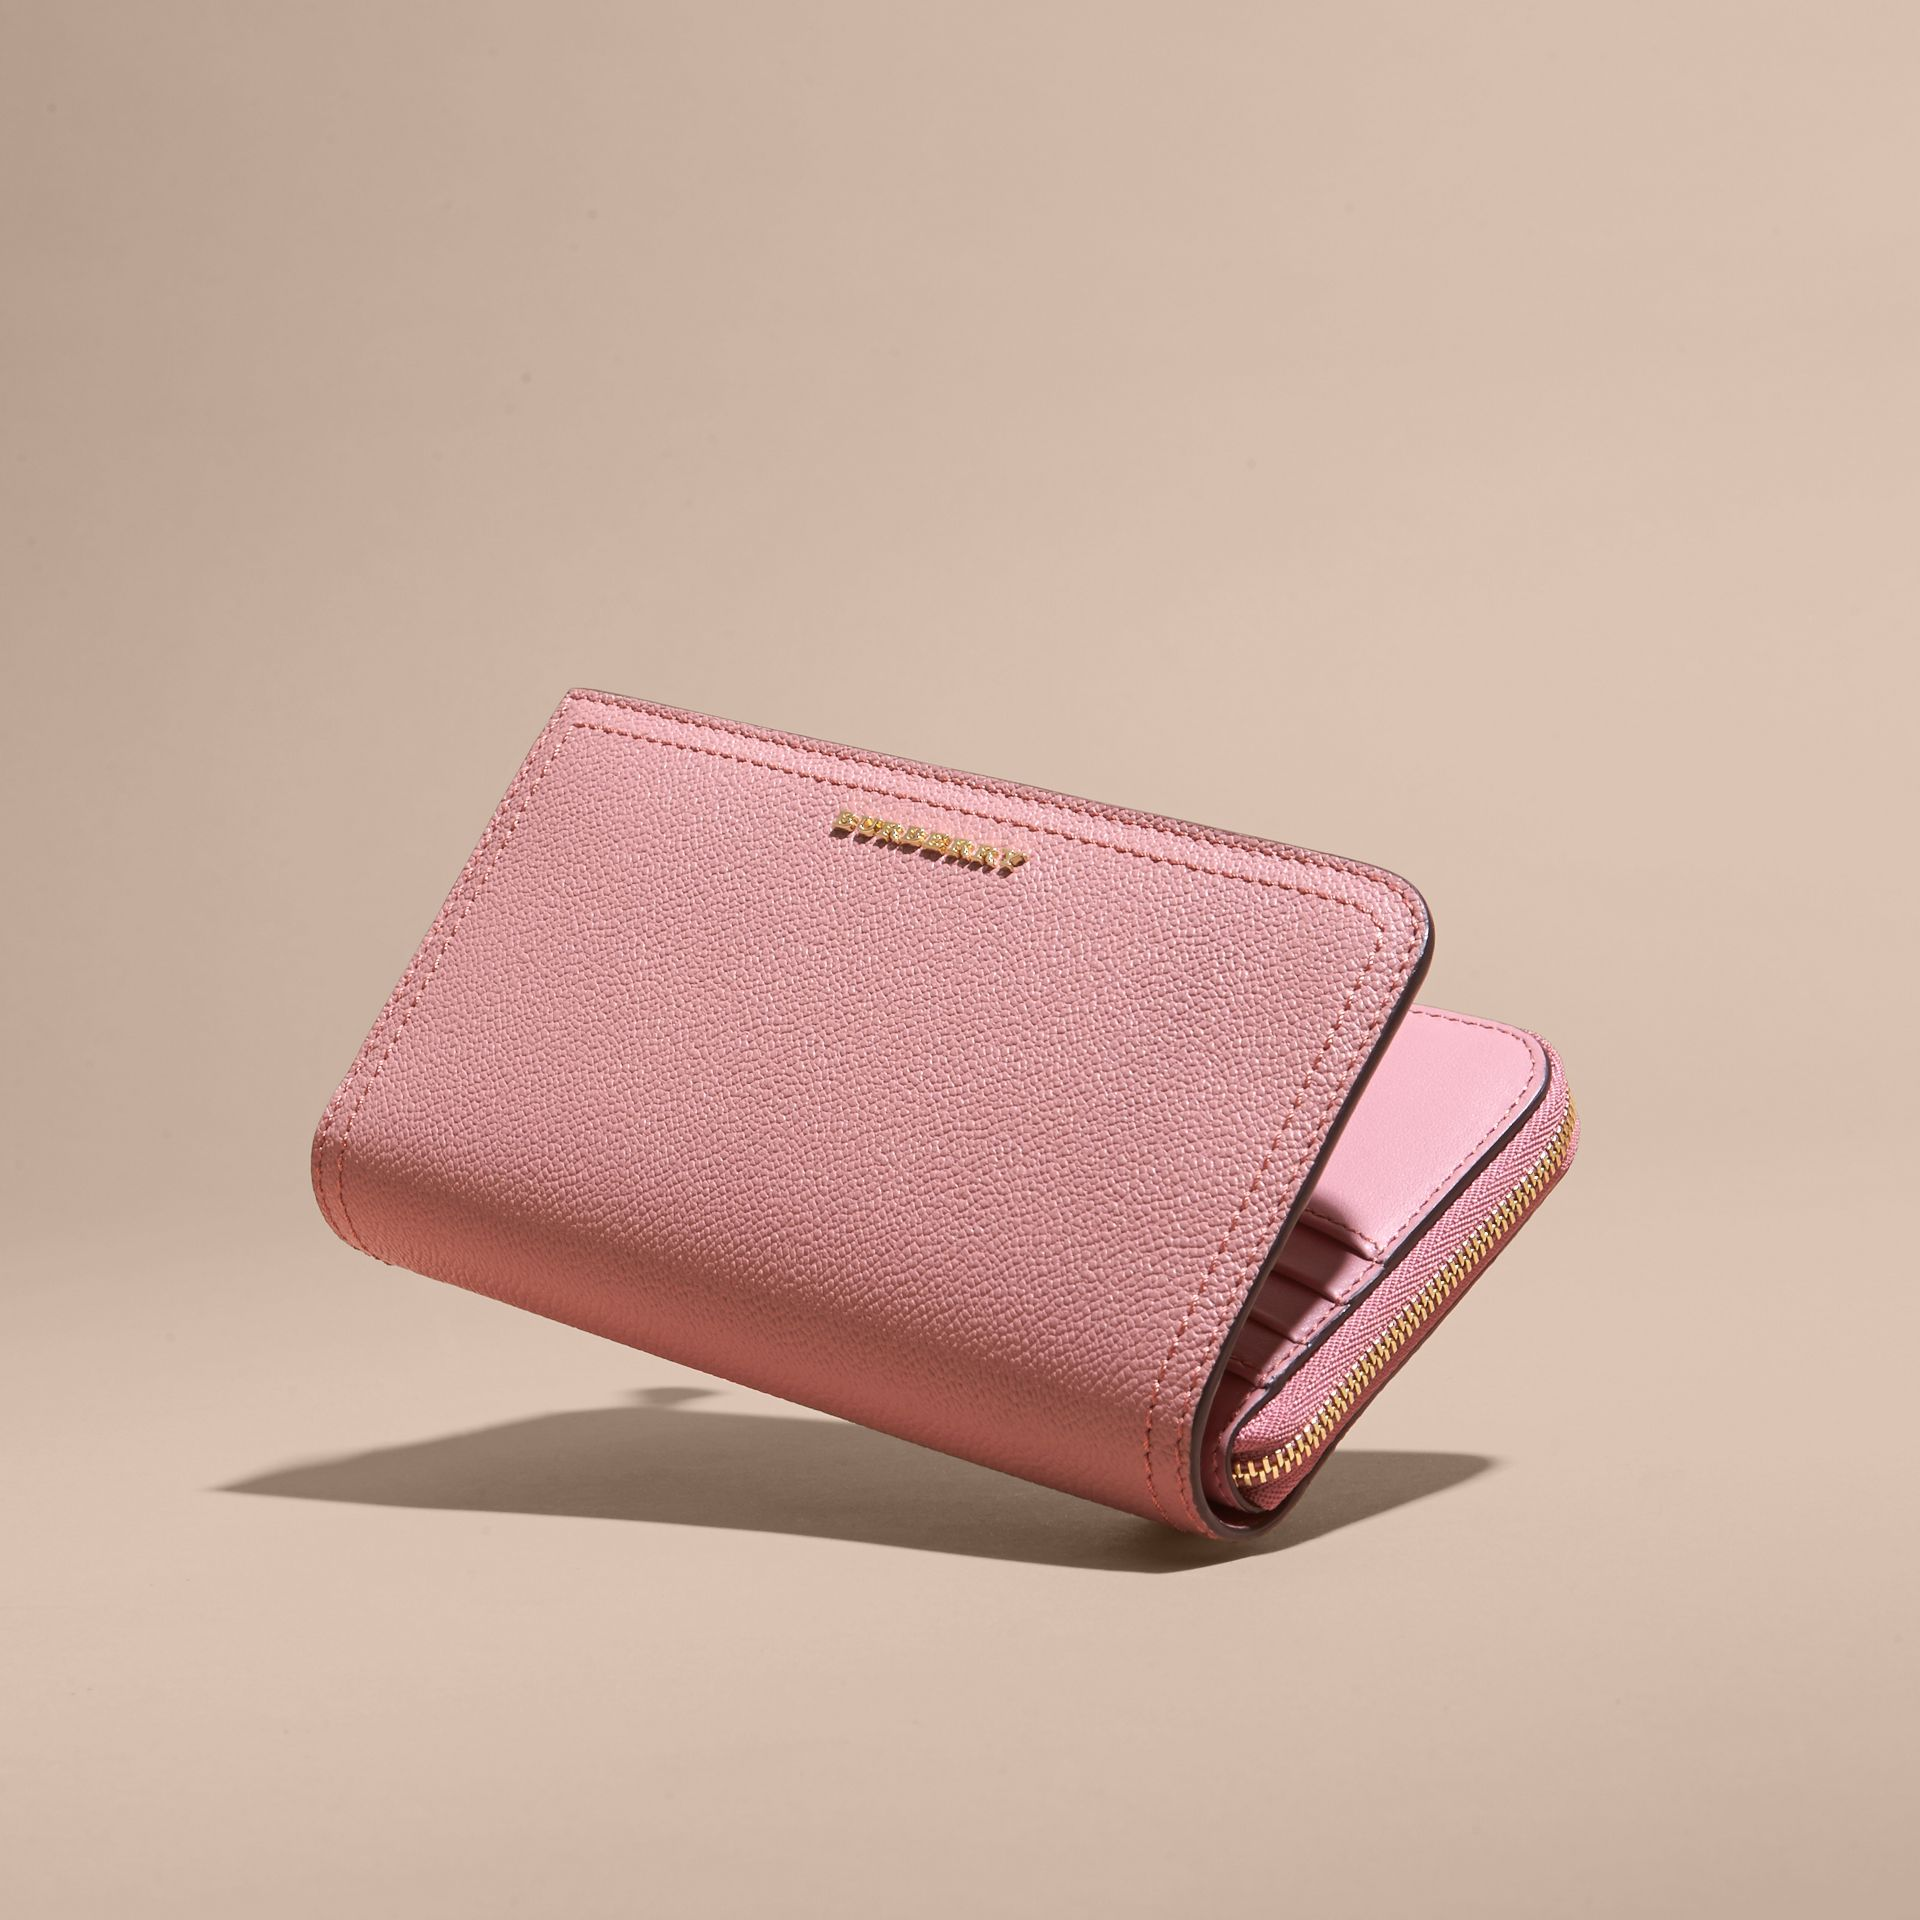 Grainy Leather Ziparound Wallet Dusty Pink - gallery image 4